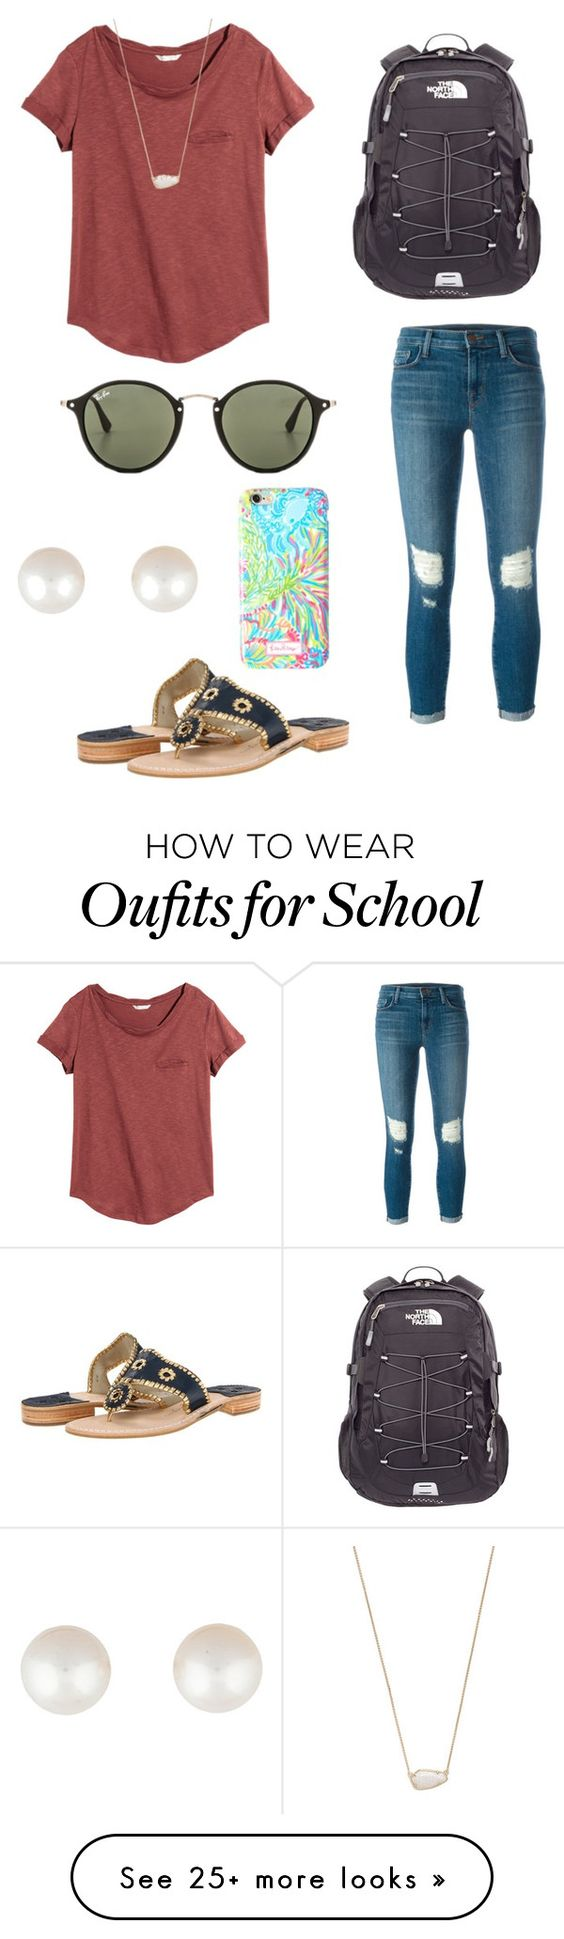 """2 more days of school"" by becker17 on Polyvore featuring J Brand, H&M, The North Face, Ray-Ban, Jack Rogers, Kendra Scott, Lilly Pulitzer and Tiffany & Co."